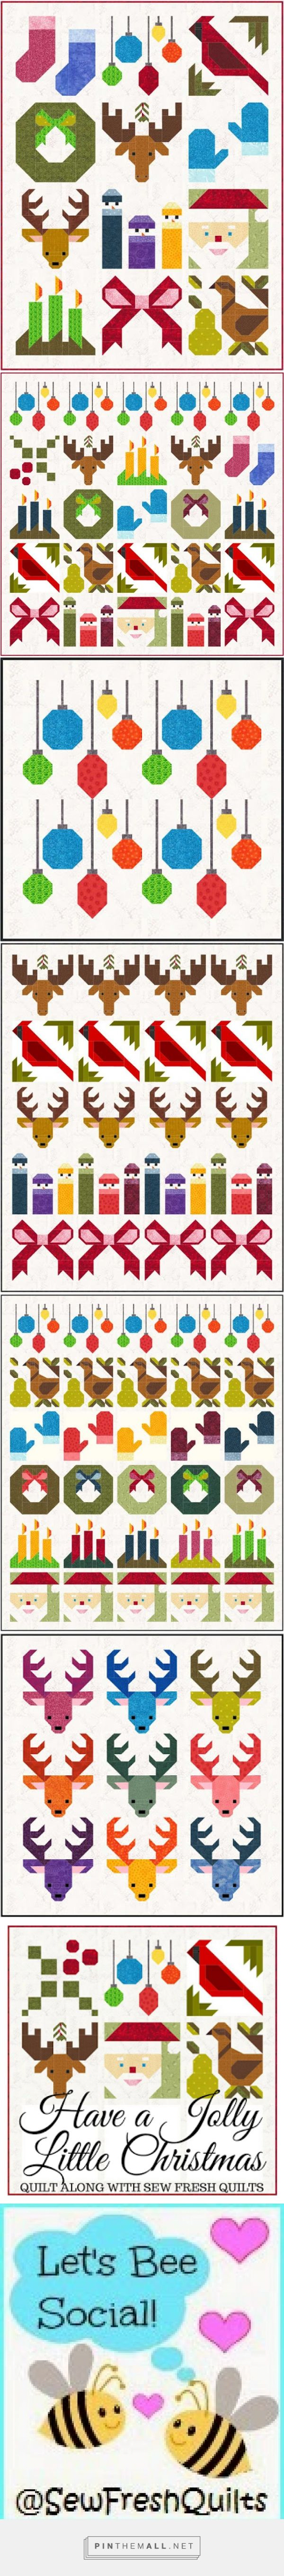 Sew Fresh Quilts: Have A Jolly Little Christmas - 2017 BOM Free Patterns... tune in to Sew Fresh Quilts beginning on January 13th, when the quilt size options and fabric requirements will be shared. Then, every 2 weeks beginning January 14th, instructions for all of the individual blocks will be shared...